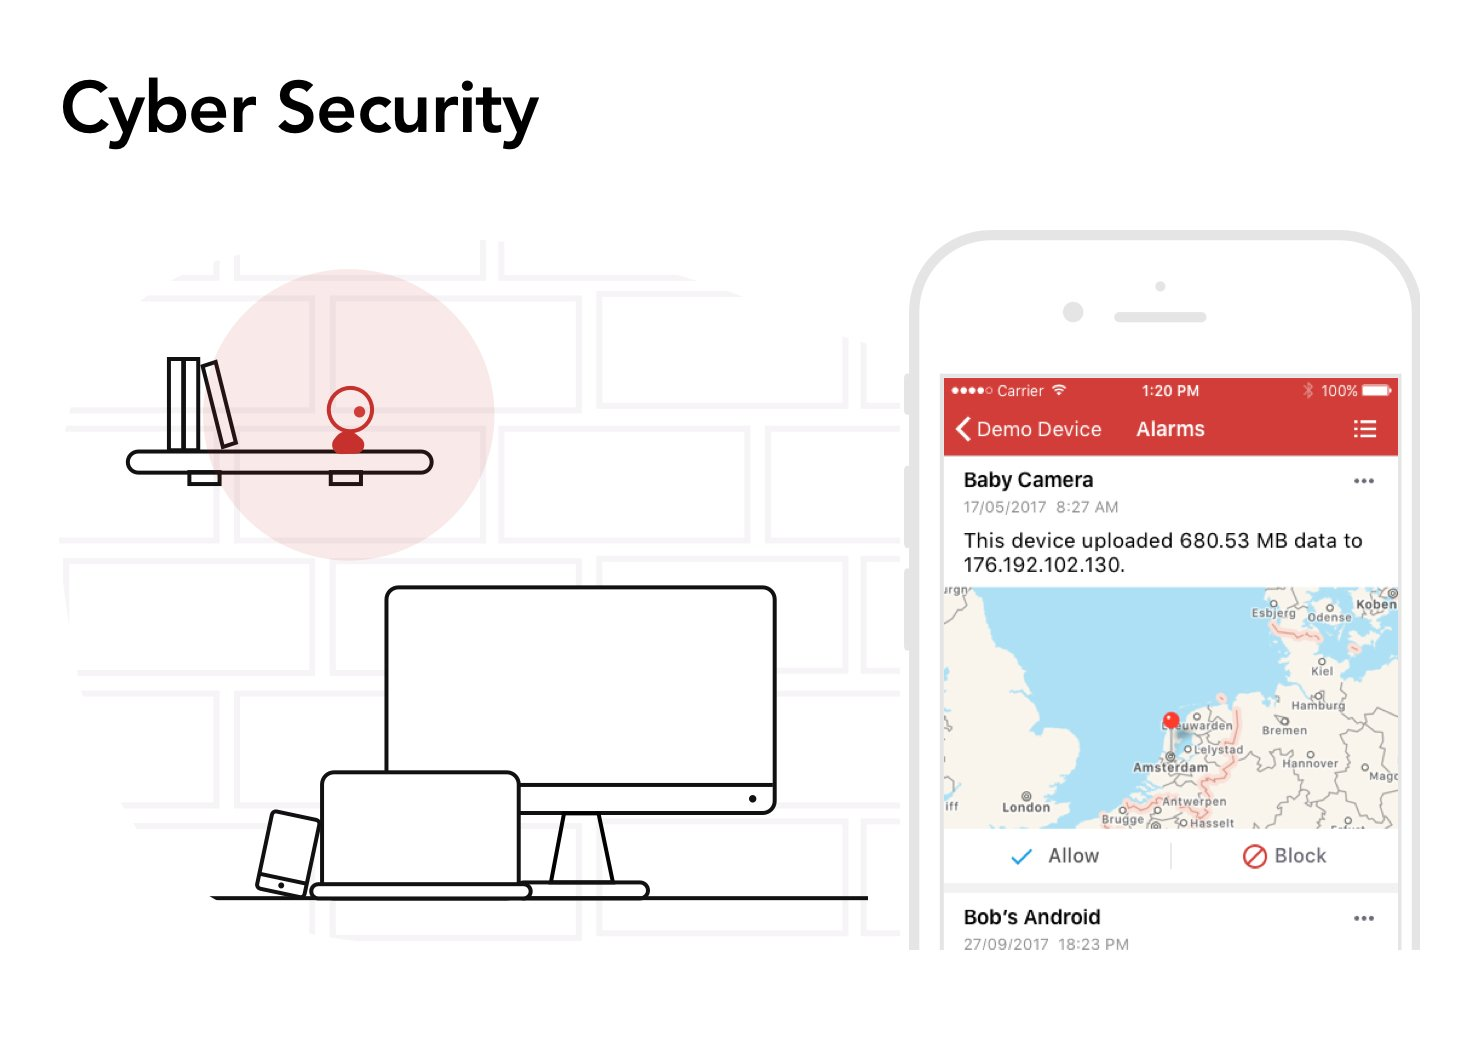 Firewalla Red: Cyber Security Firewall for Home & Business, Protect Network  from Viruses & Malware   Parental Control   Block Ads   Free VPN Server  